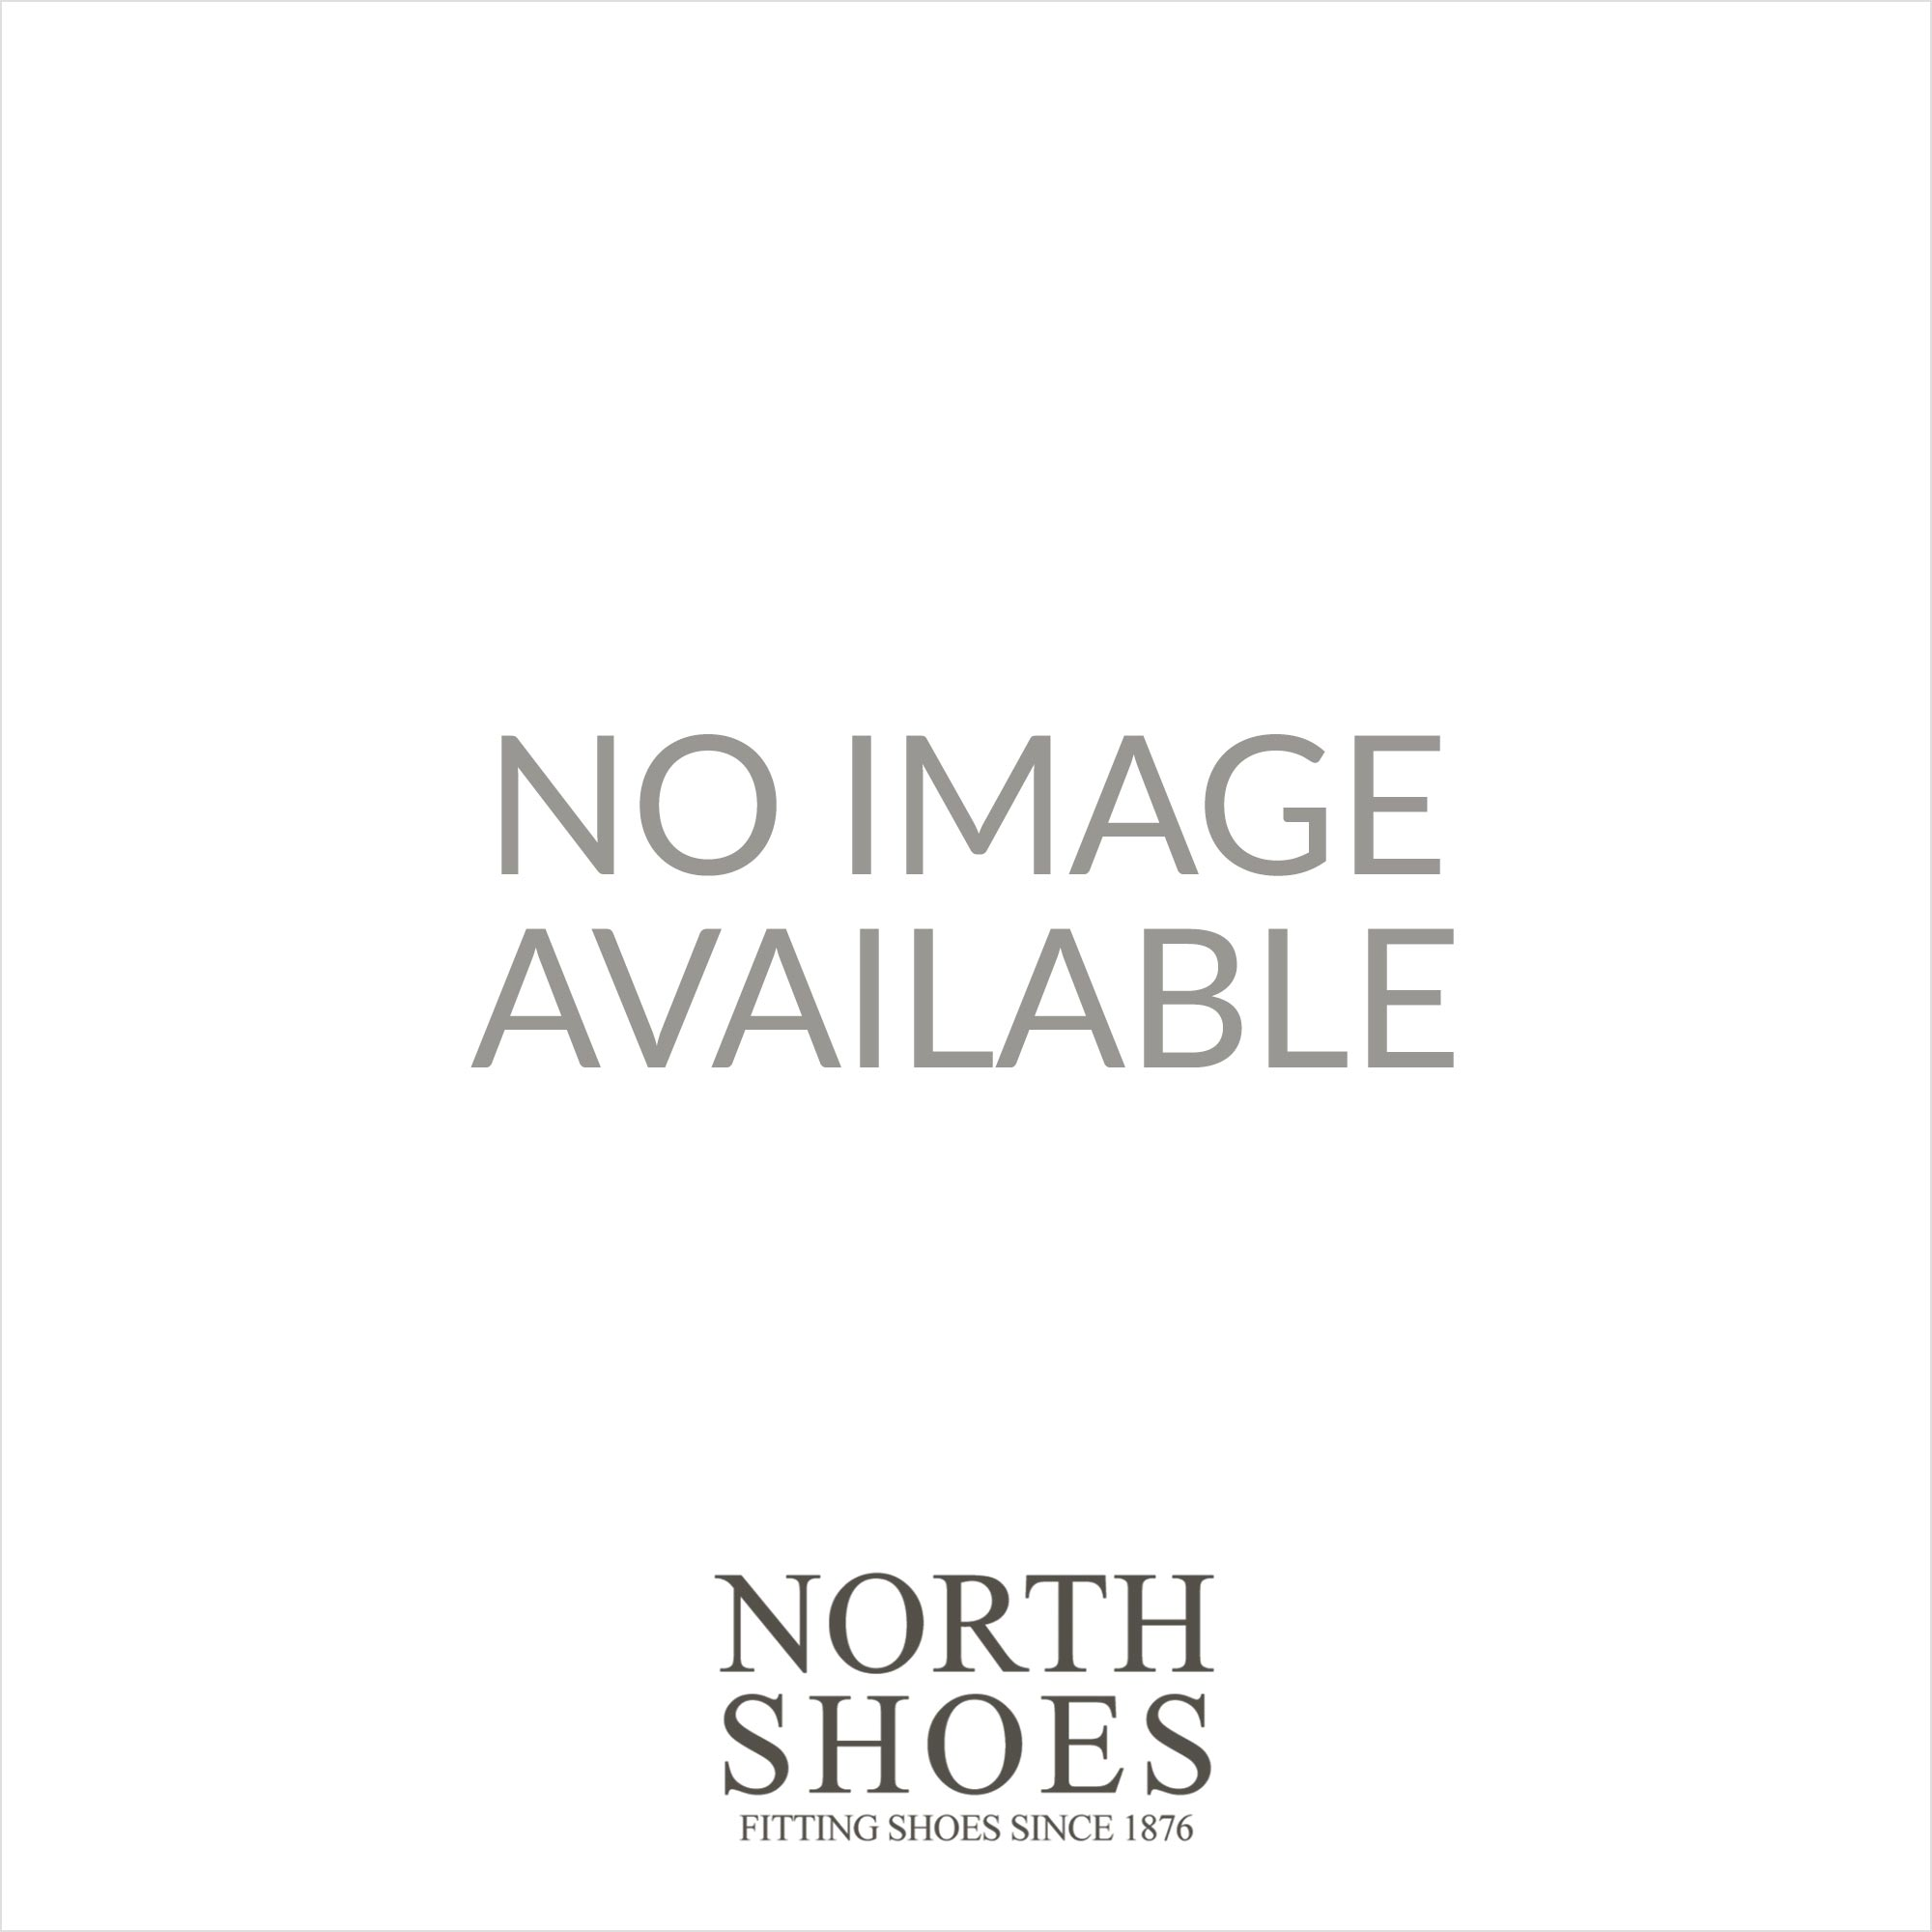 37ba70d3d41d91 Fitflop Glitterball Bronze Glitter Womens Toe Post Sandal - UK 8 - Fitflop  from North Shoes UK